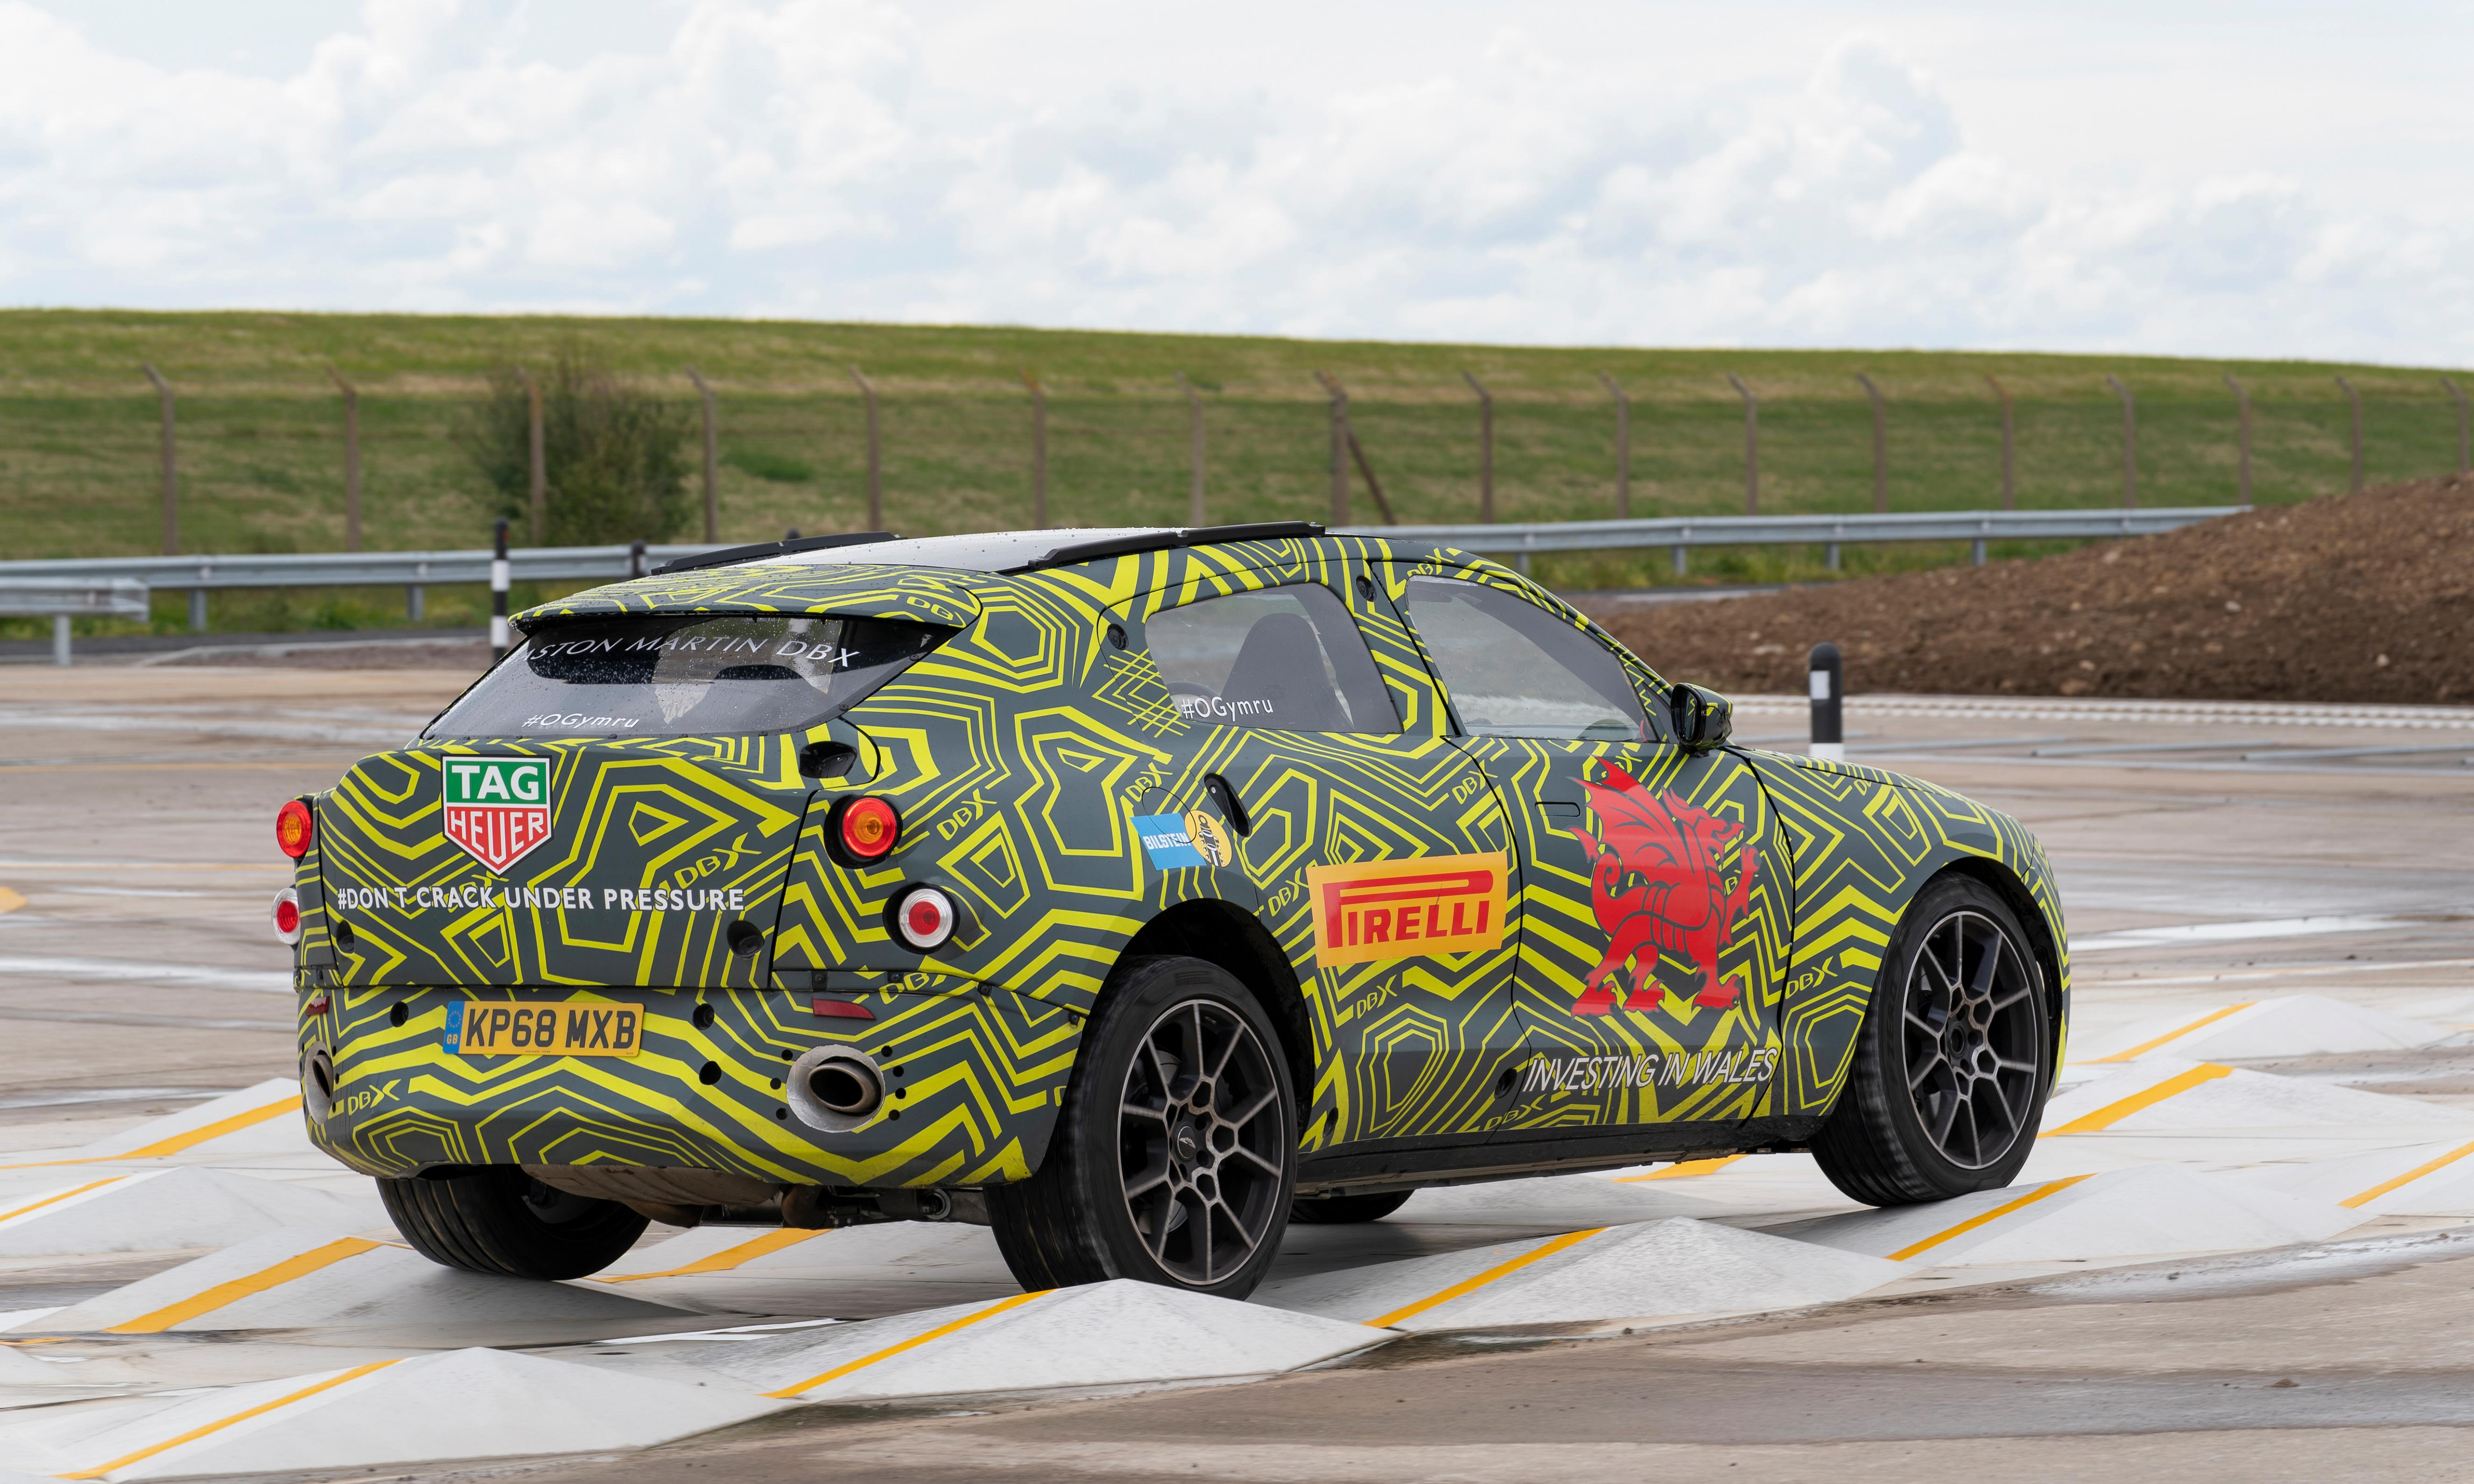 Aston Martin opens new factory in south Wales to build SUV